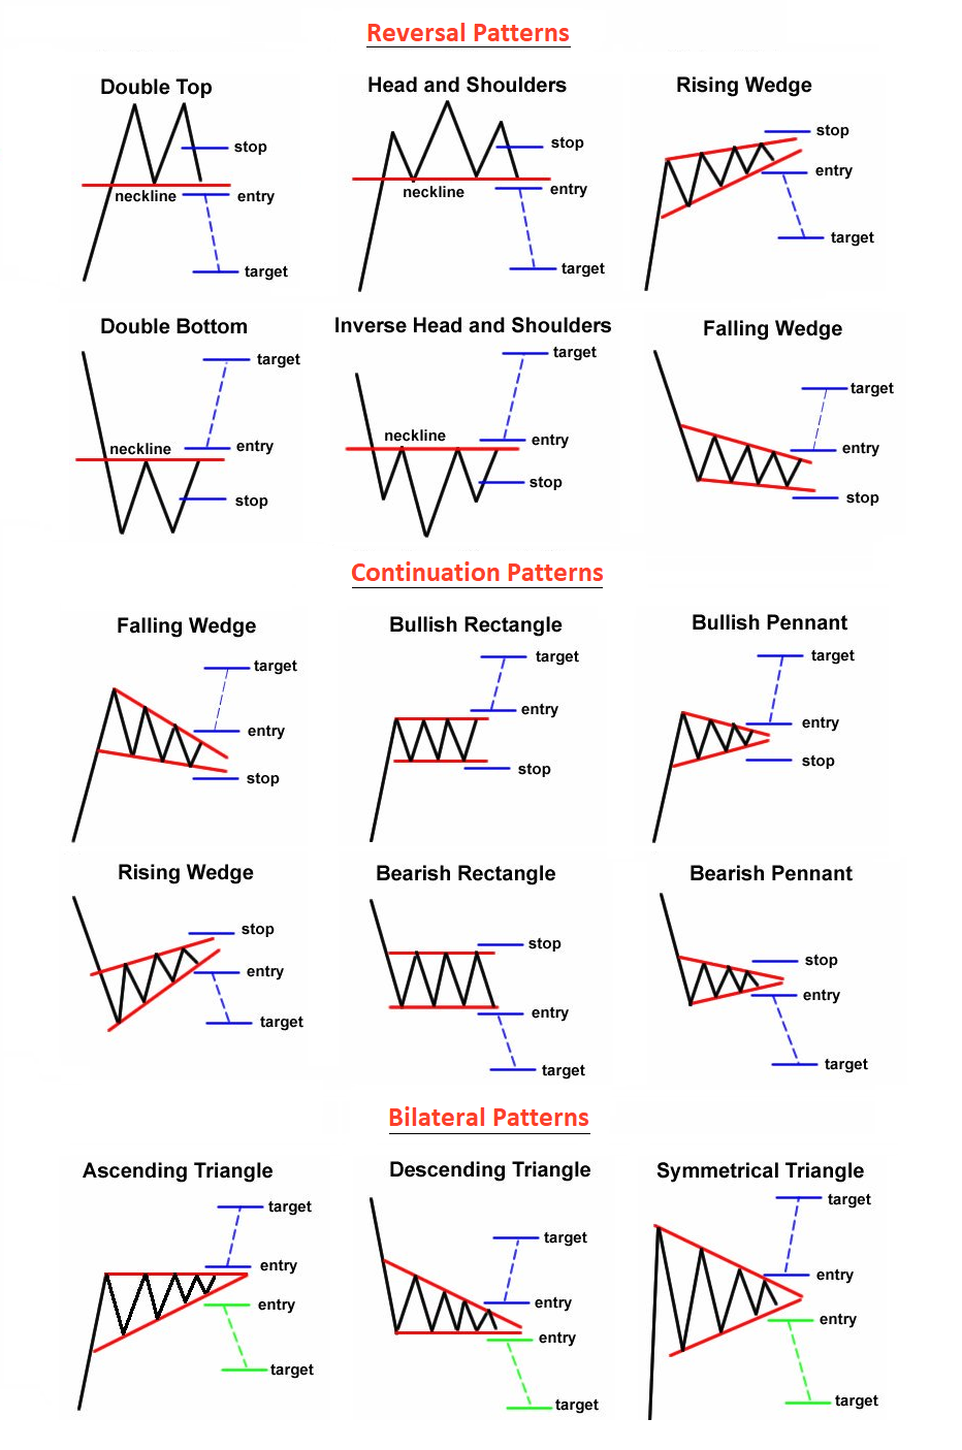 day trading chart patterns head and shoulders rising wedge doubletop bullish pennant bearish pennant